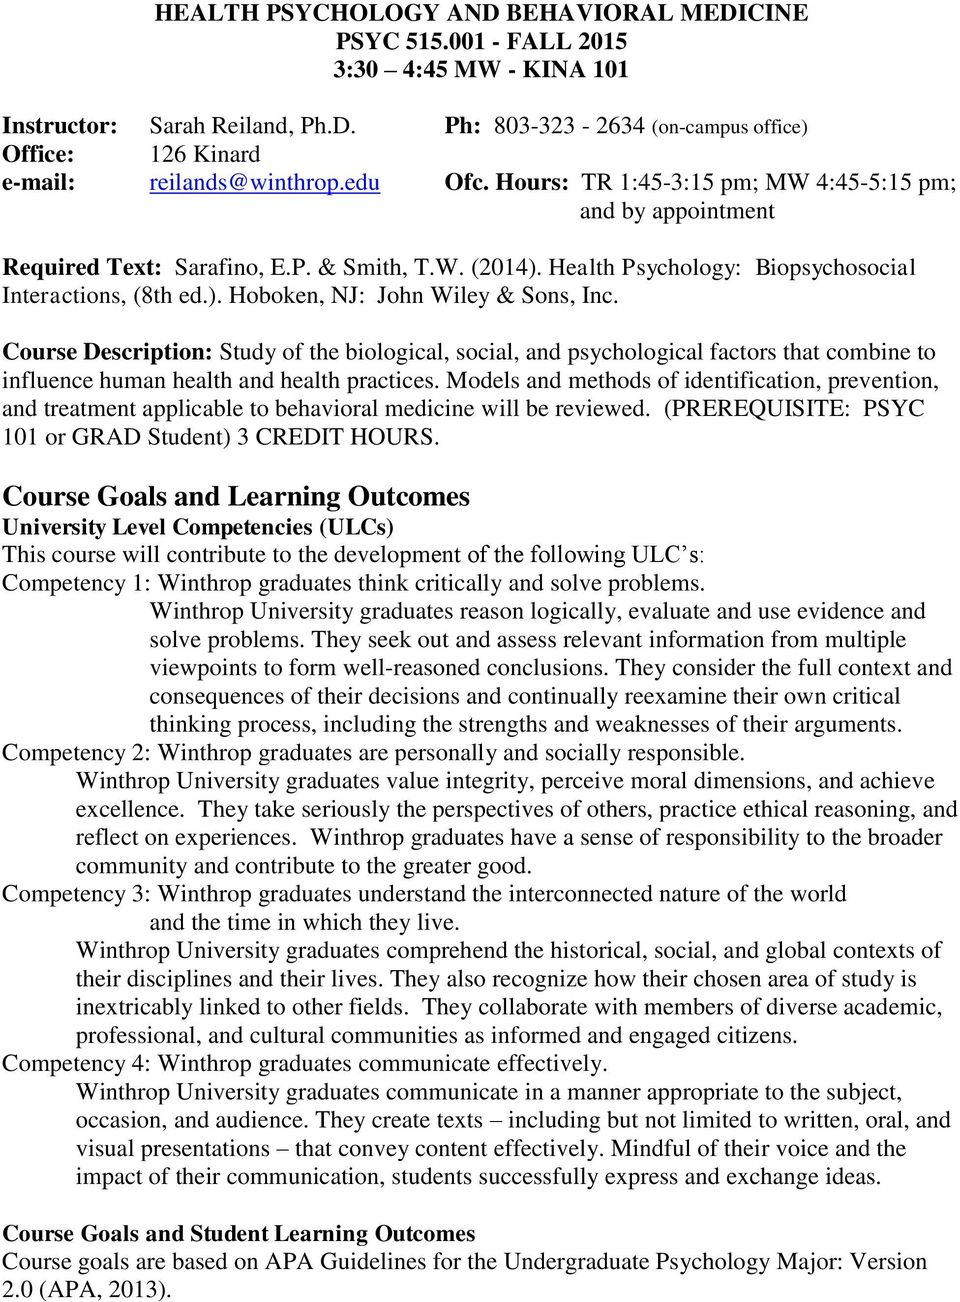 Course Description: Study of the biological, social, and psychological factors that combine to influence human health and health practices.